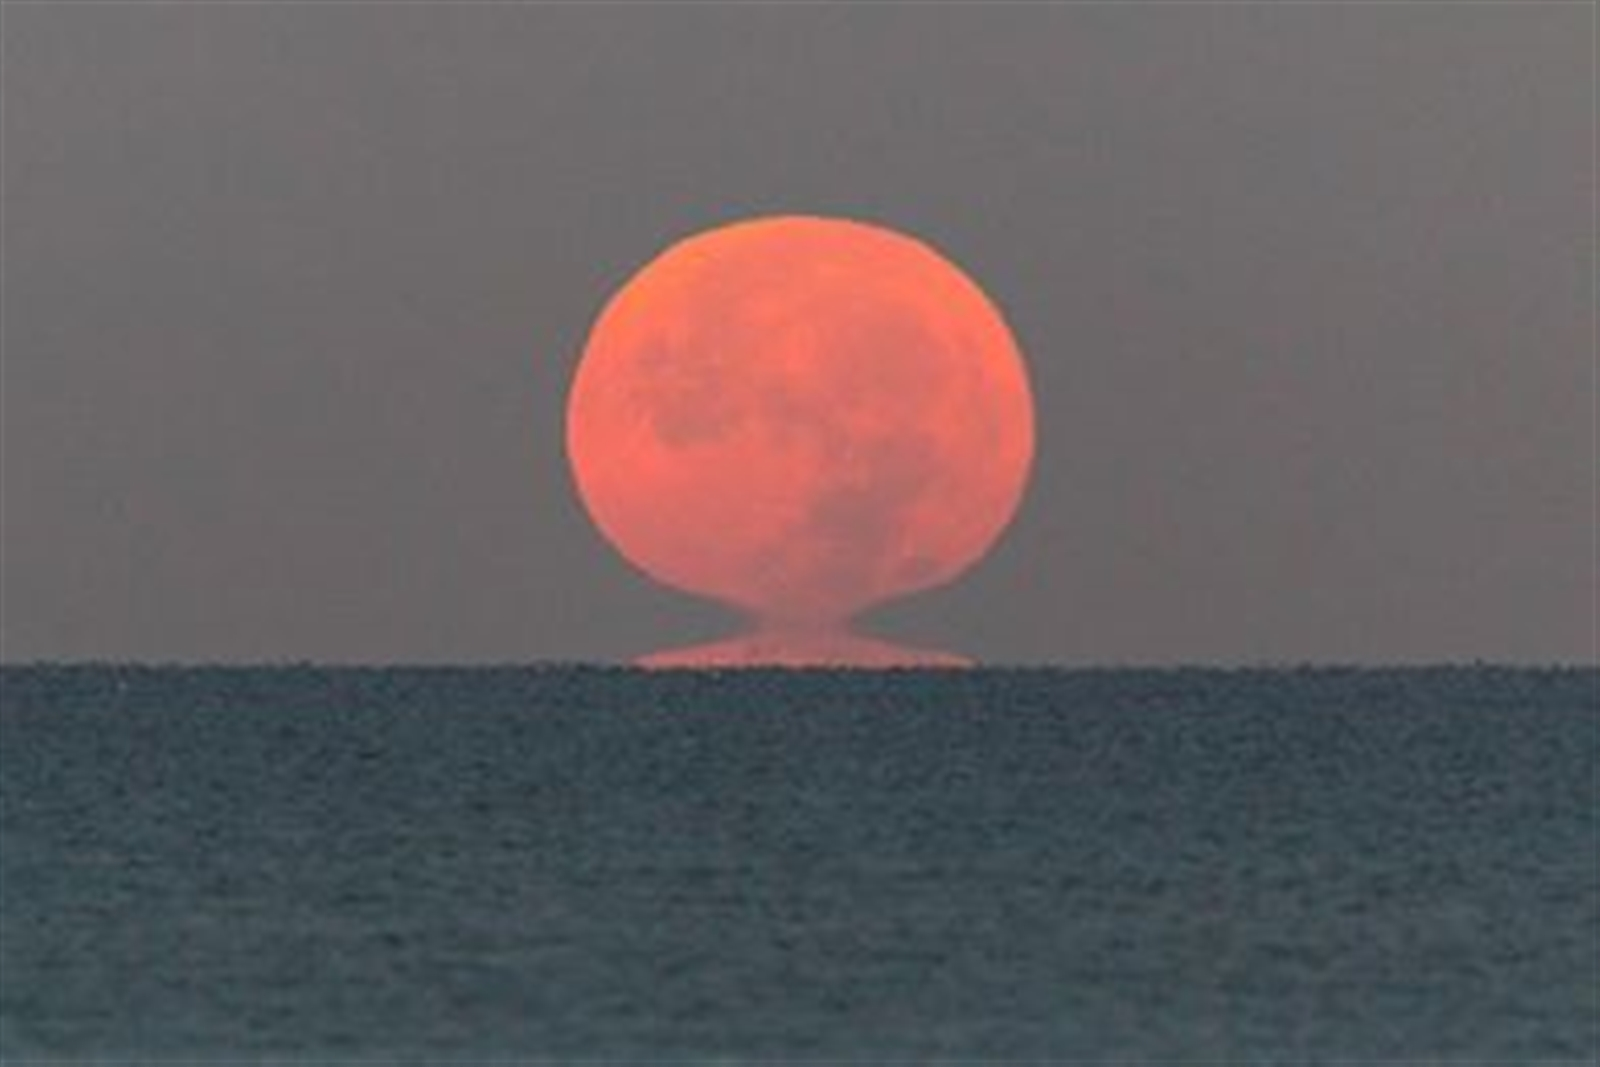 This photo of the supermoon over the Gulf of Mexico was taken on the morning of Dec. 3, 2017, from Bonita Springs, Fla.